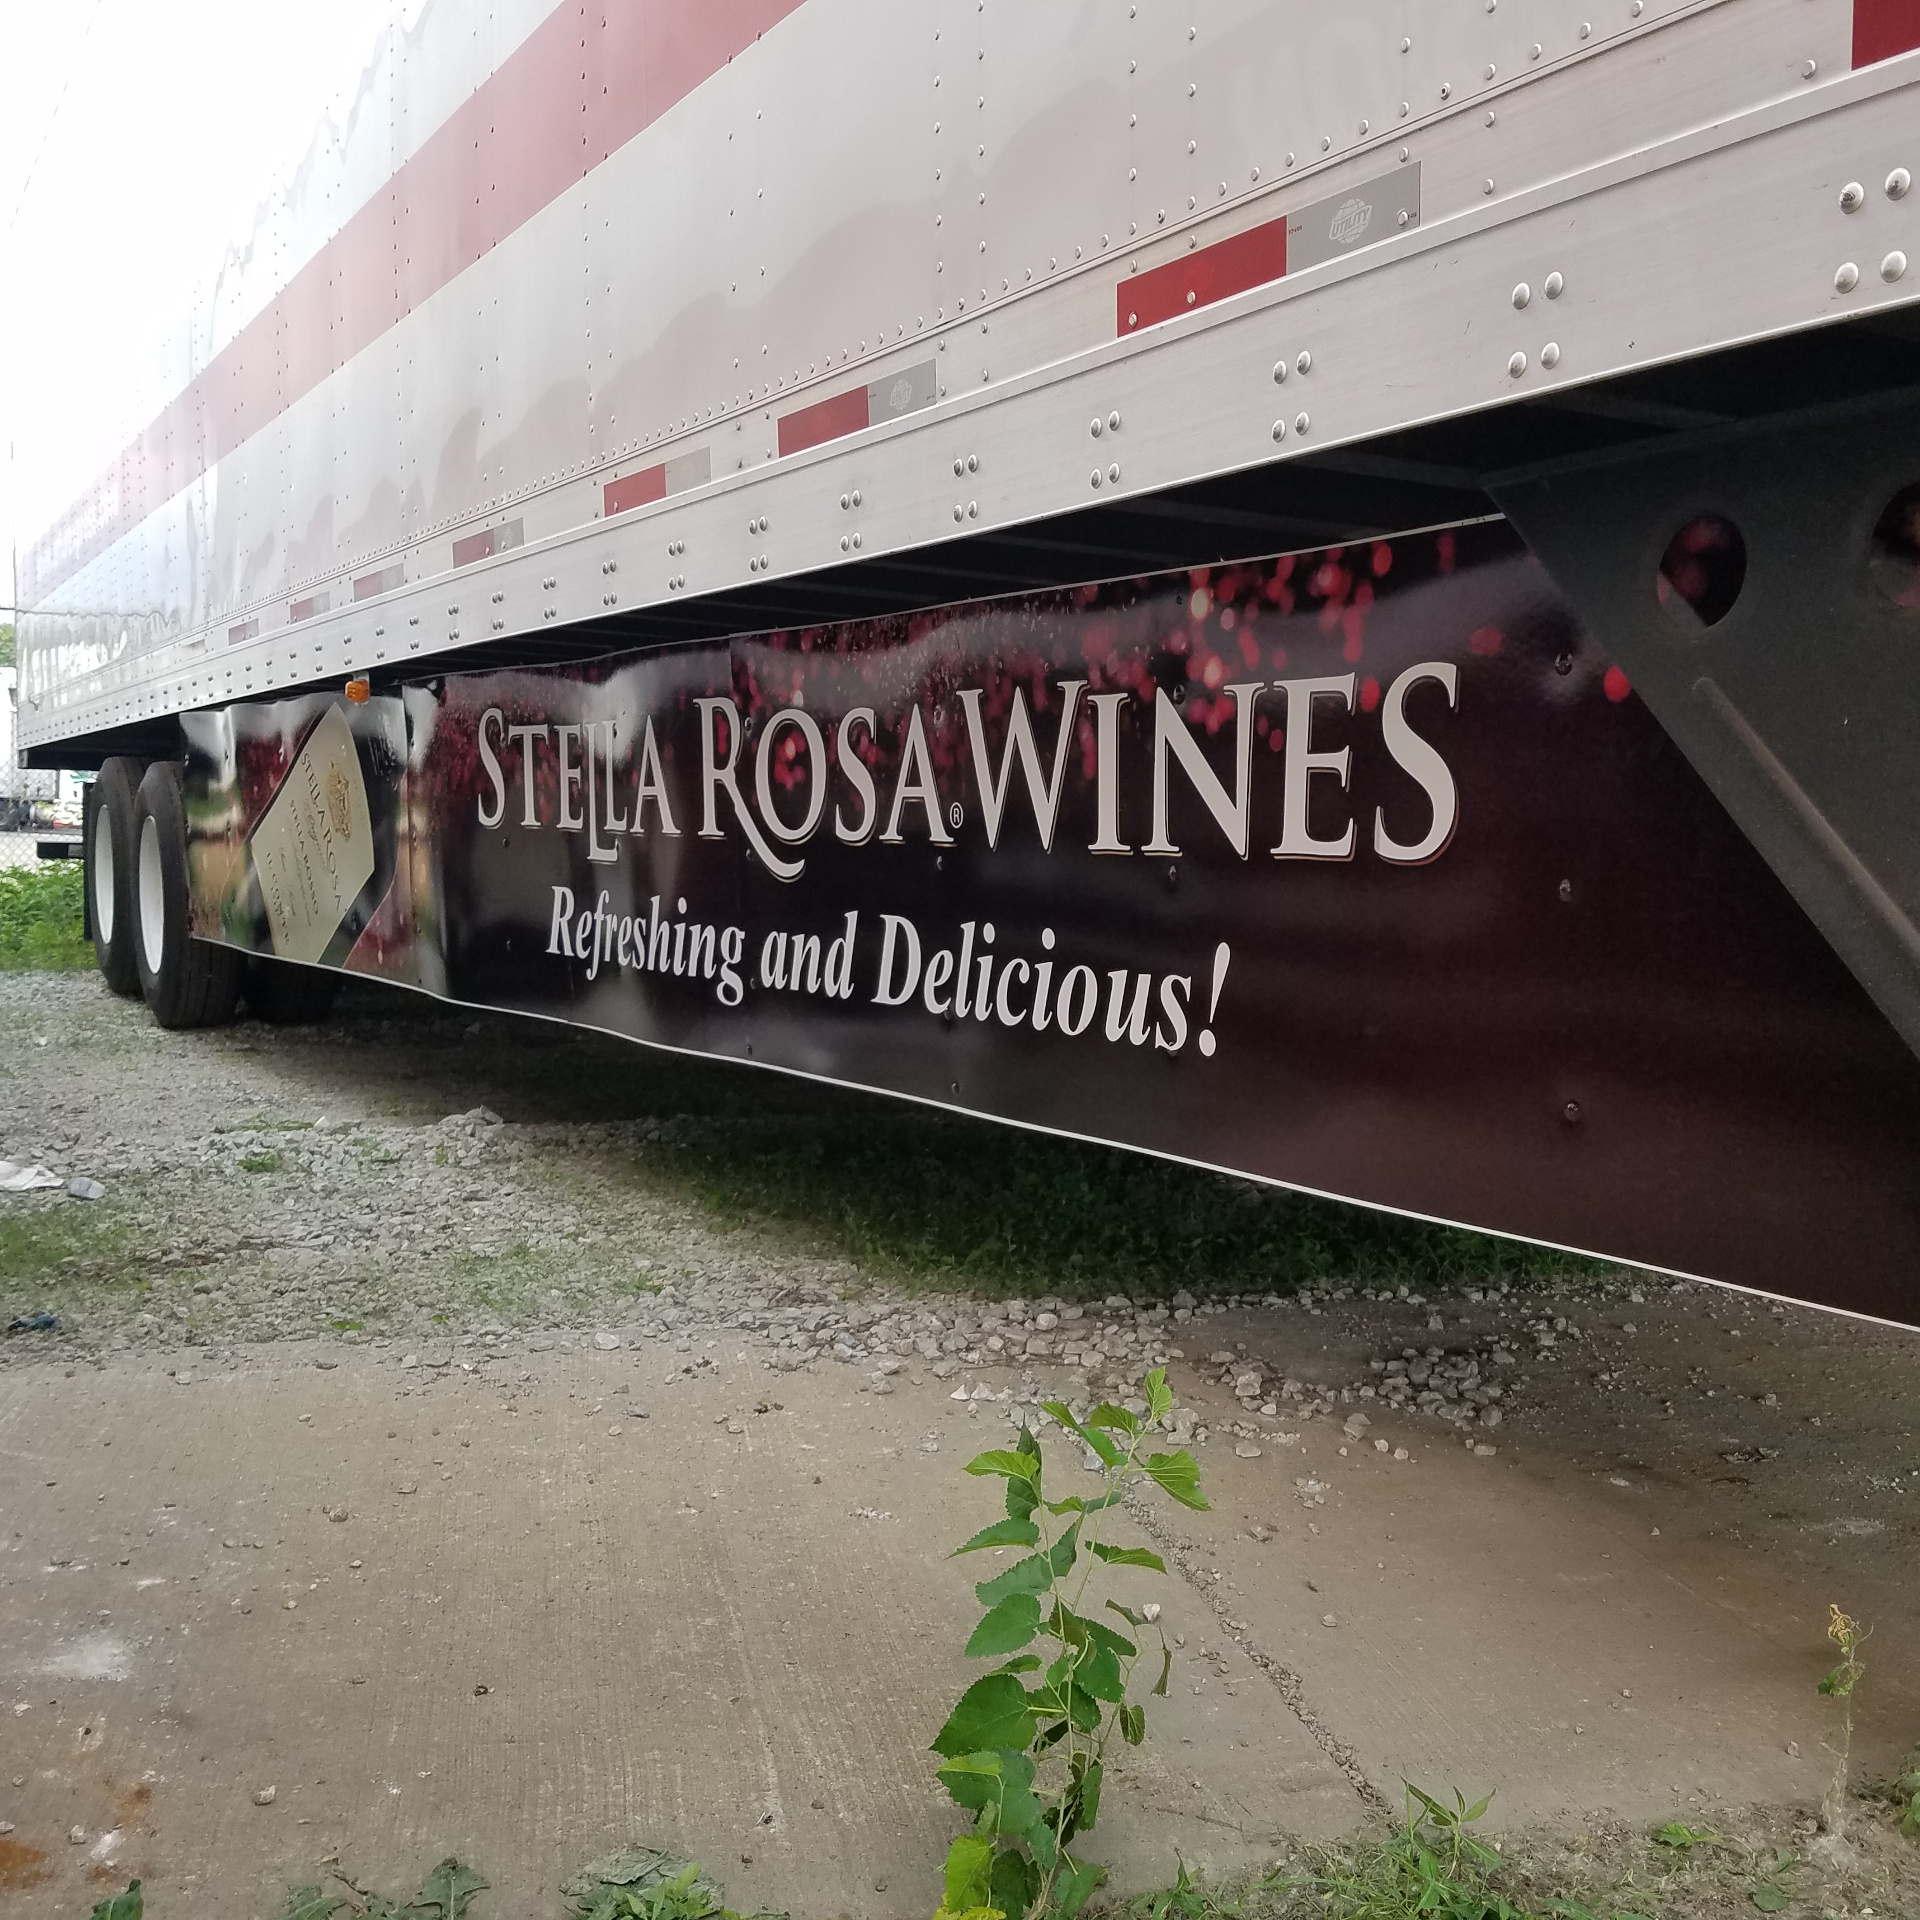 Artur Express Trailer Wrap with Stella Rosa Wines side graphic.…